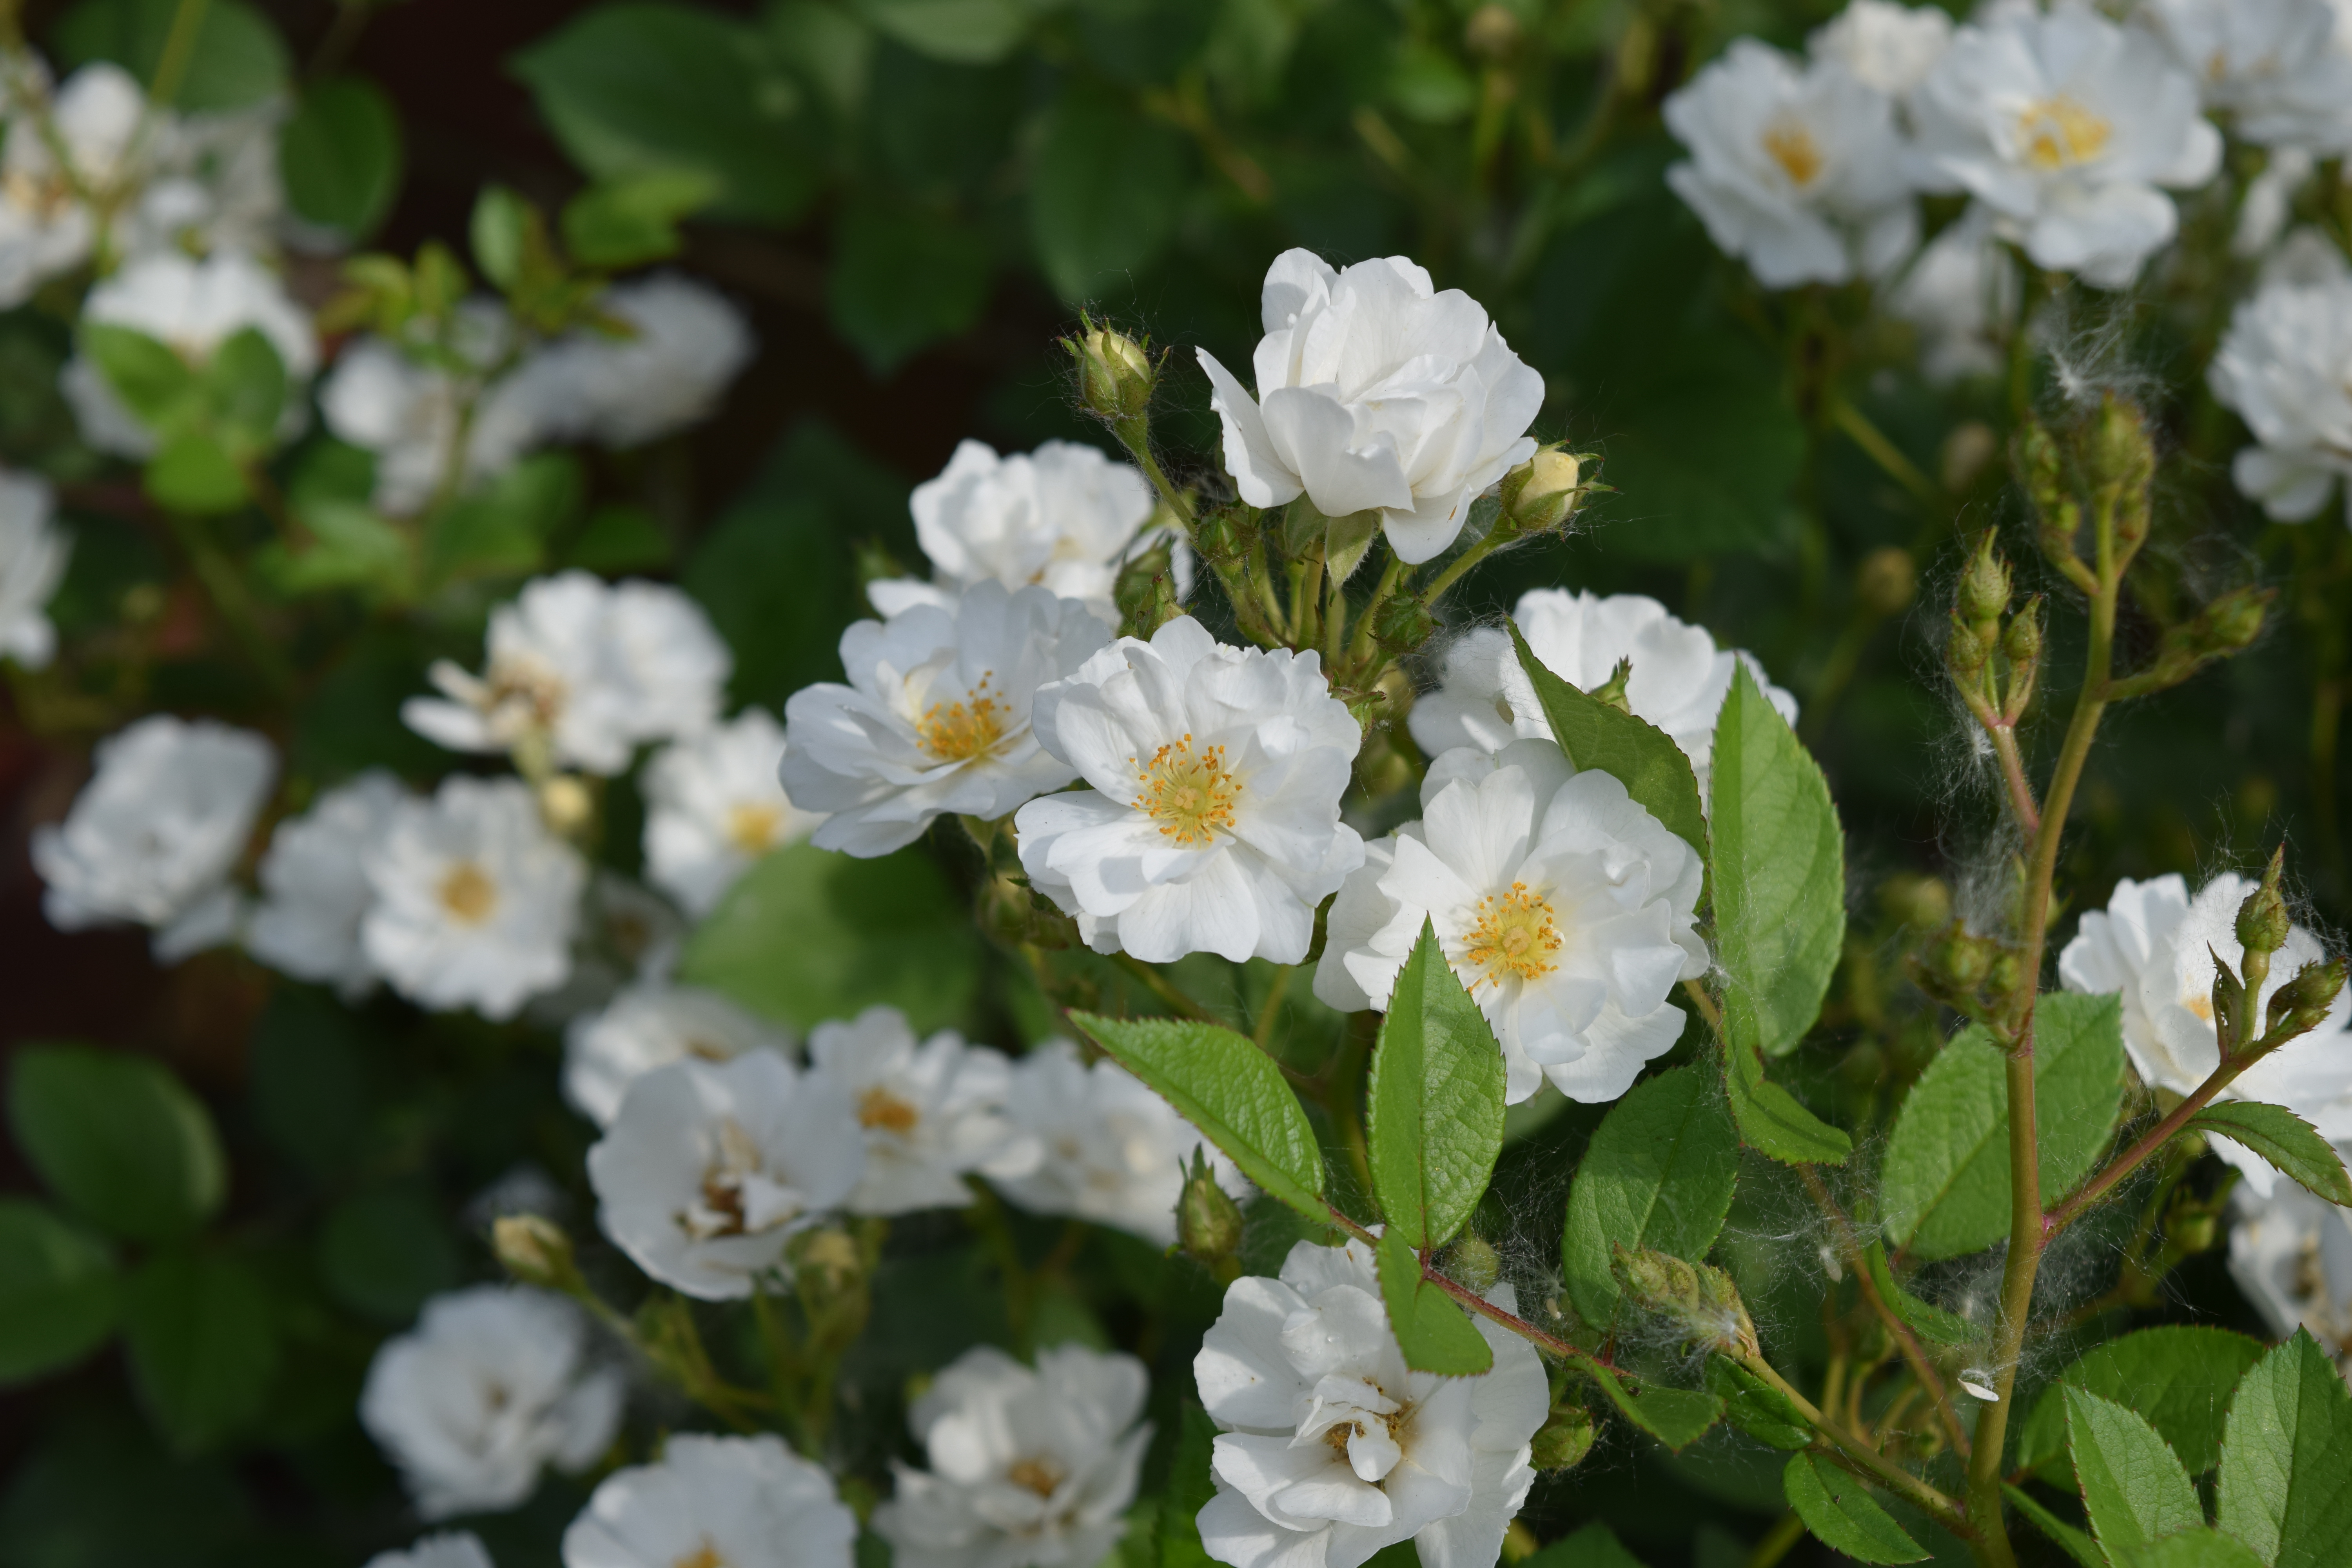 Shrub rose cassie is a flower powerhouse gardeninacity for White flowering bush